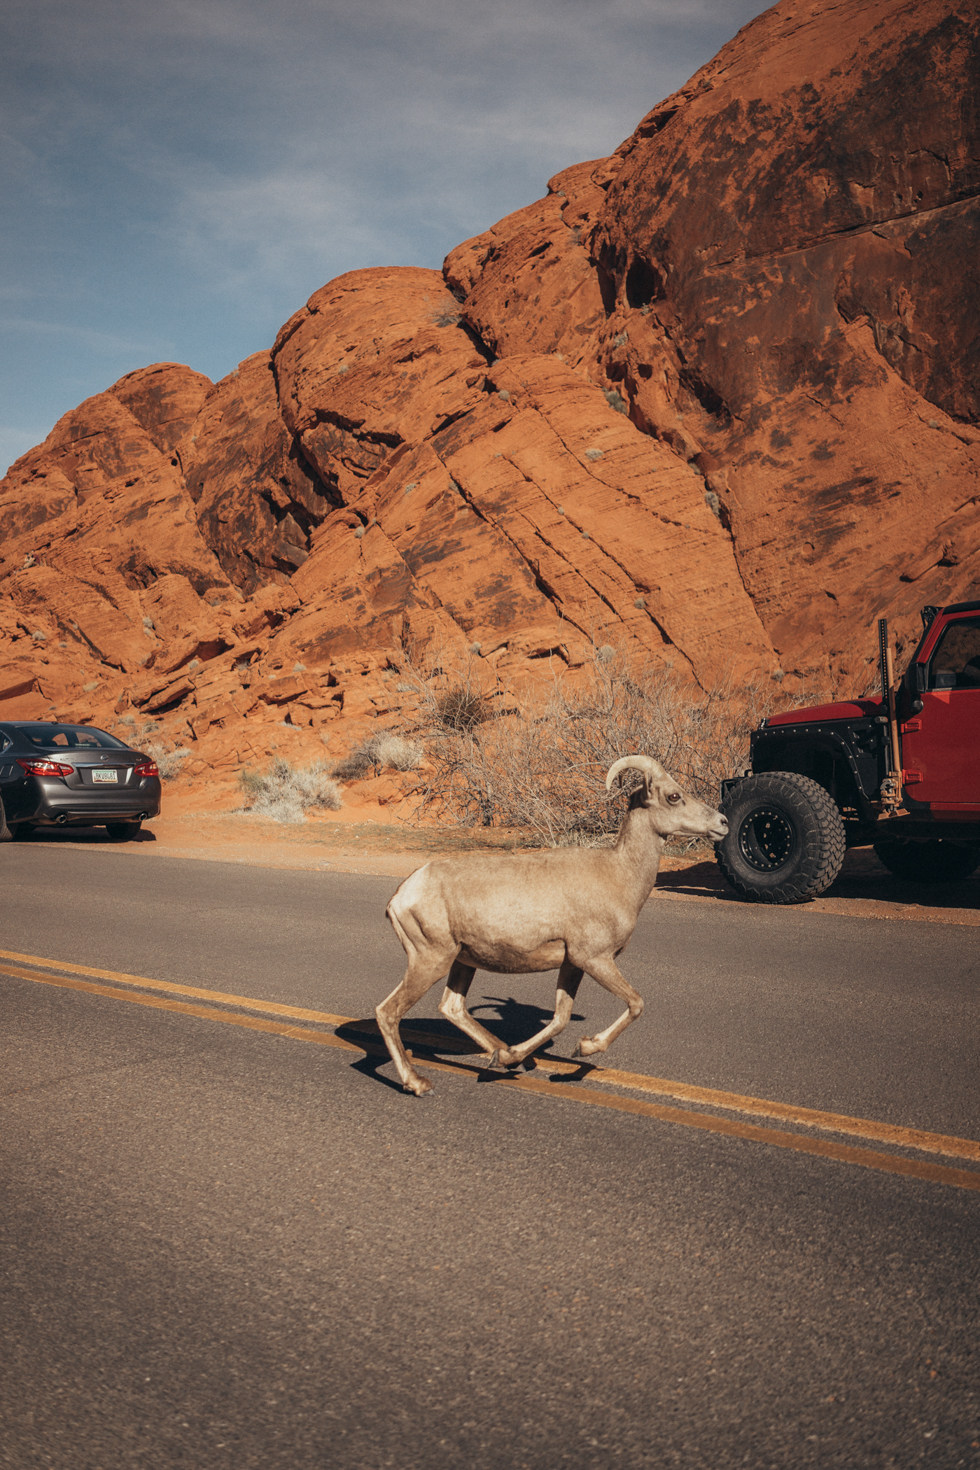 Valley of Fire State Park - Southwest Road Trip #Nevada #USA #RoadTrip